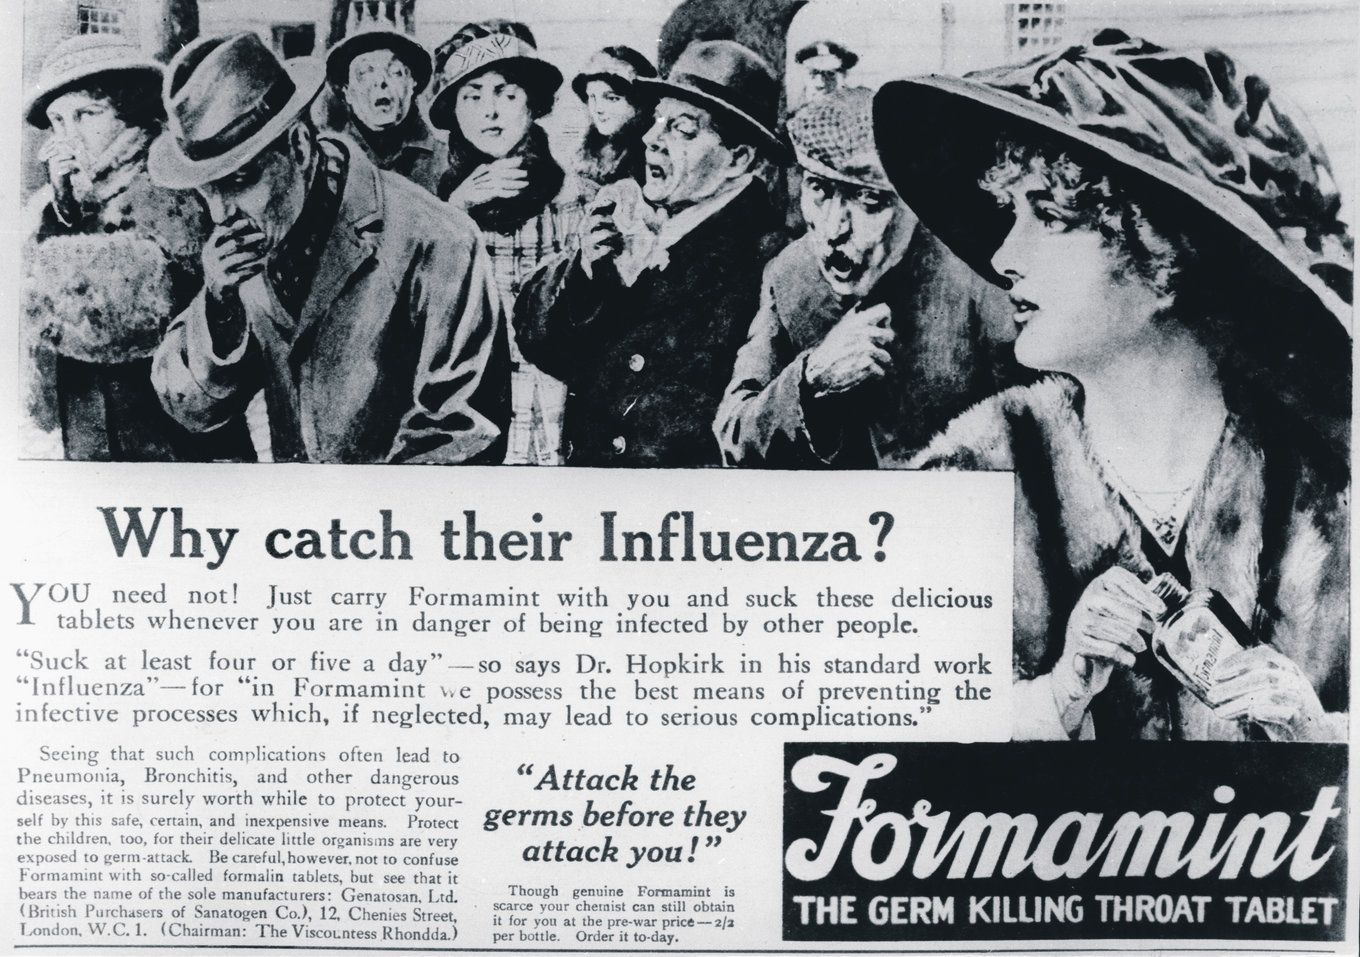 Historic 1918 influenza public health ad (